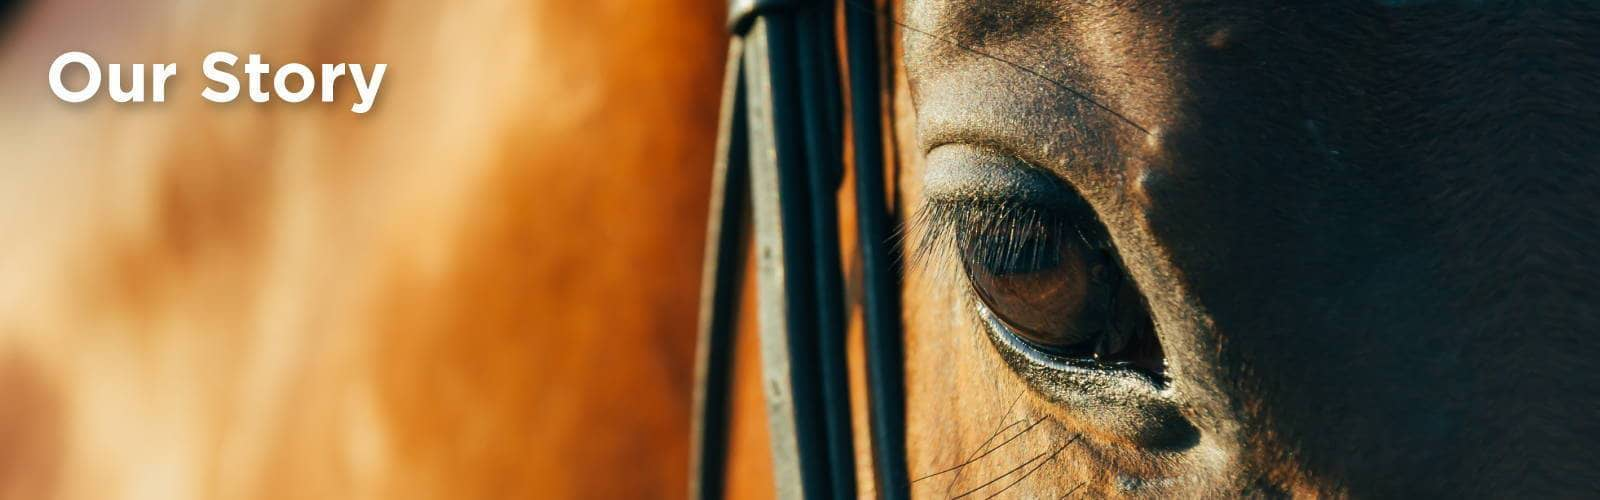 C4 our story with close up of horse